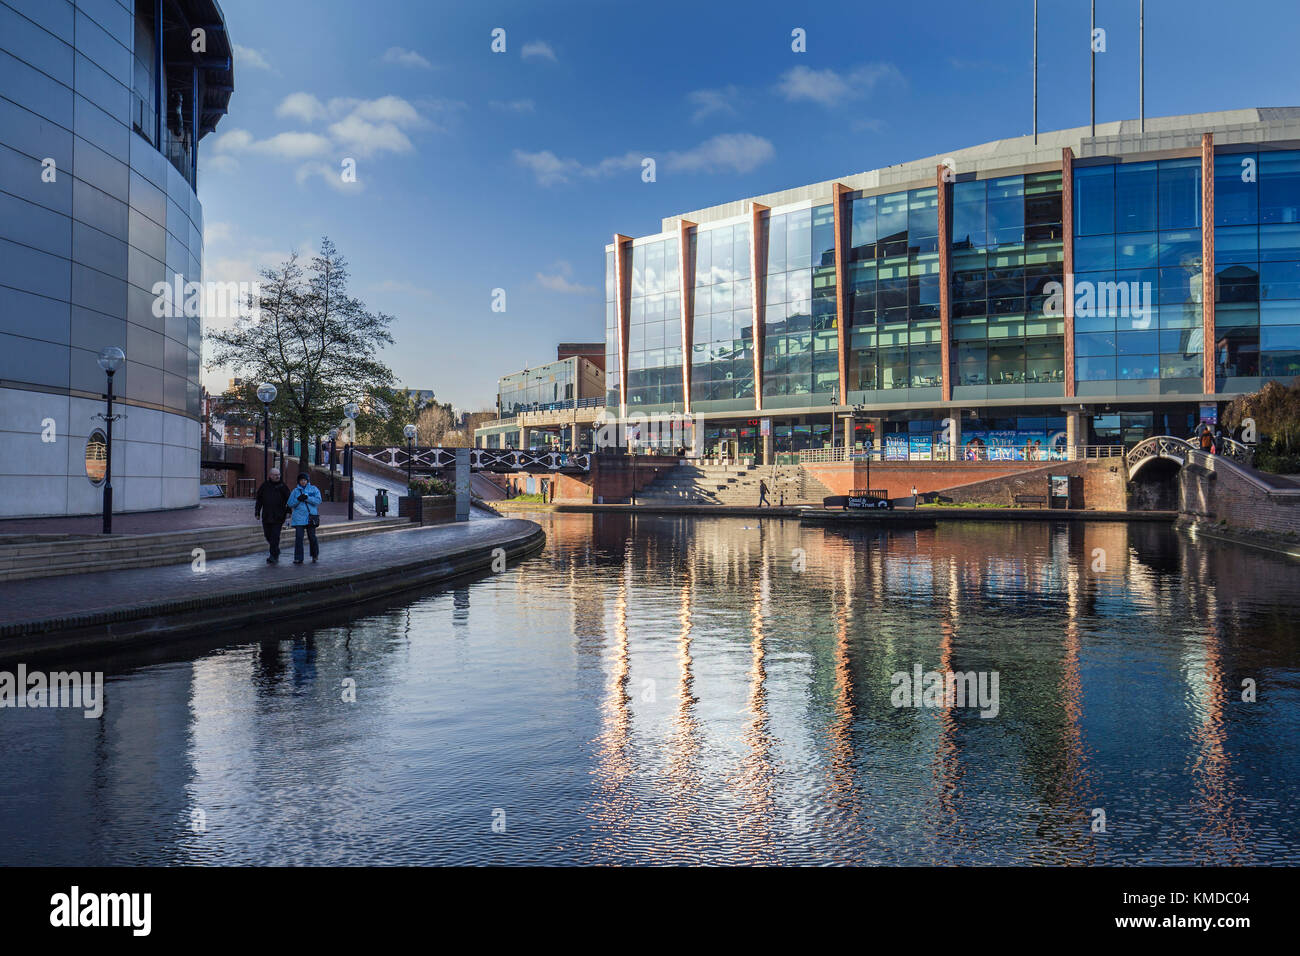 Birmingham City Centre Buildings Reflected on Surface of Canal - Stock Image